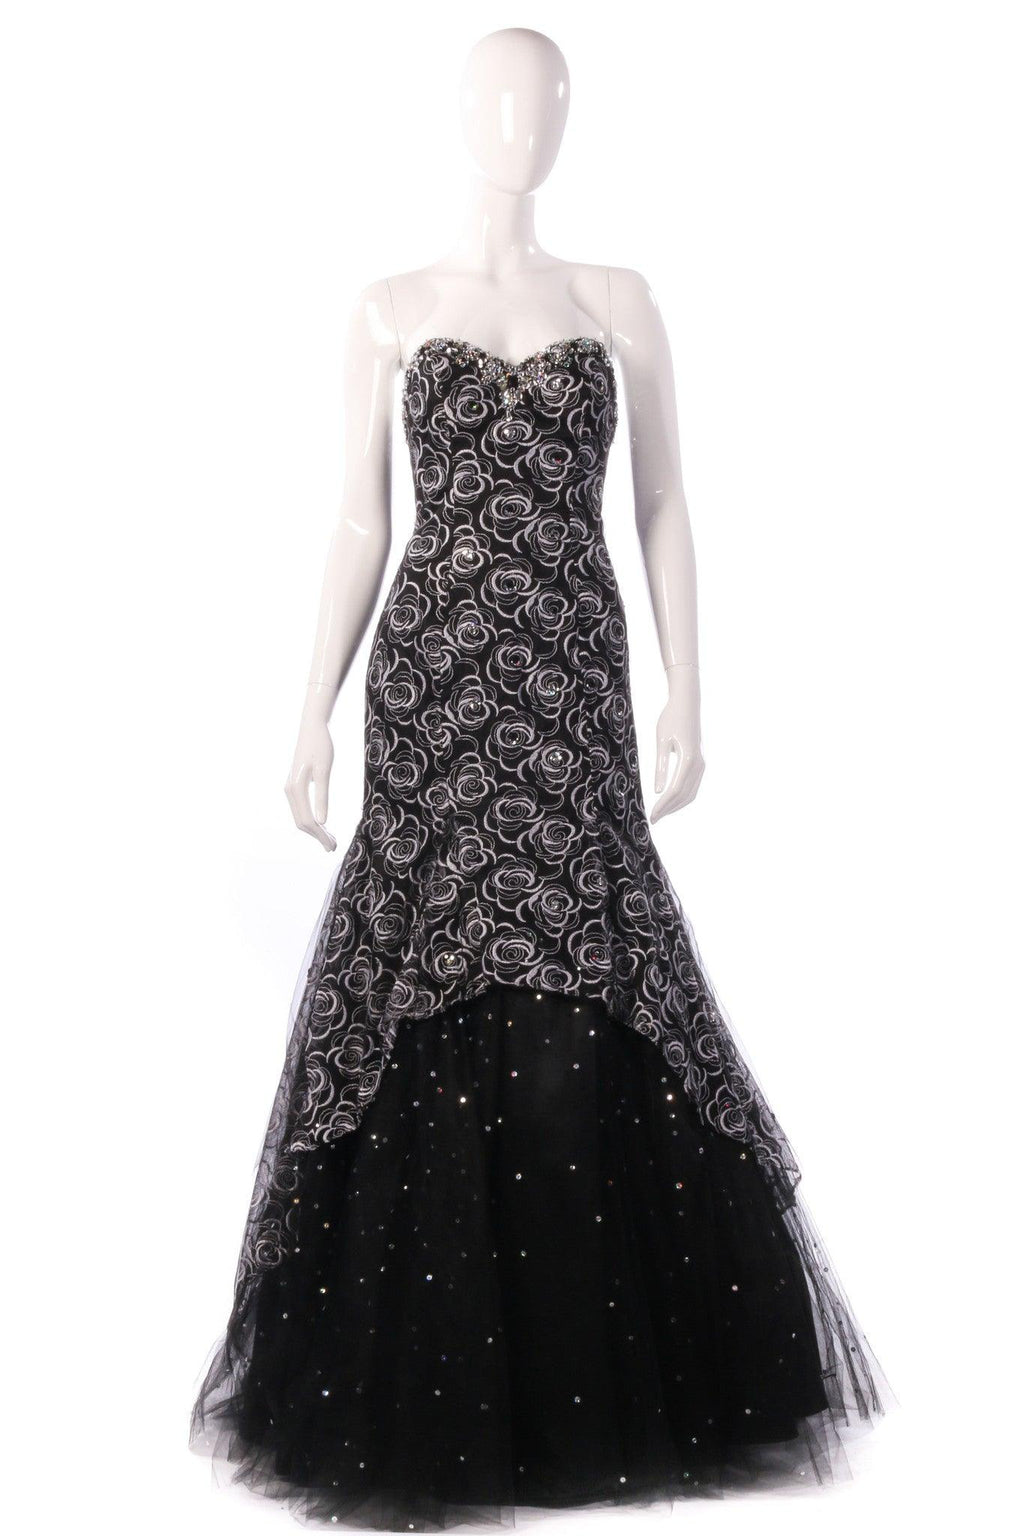 Mari Lee black and silver ballgown